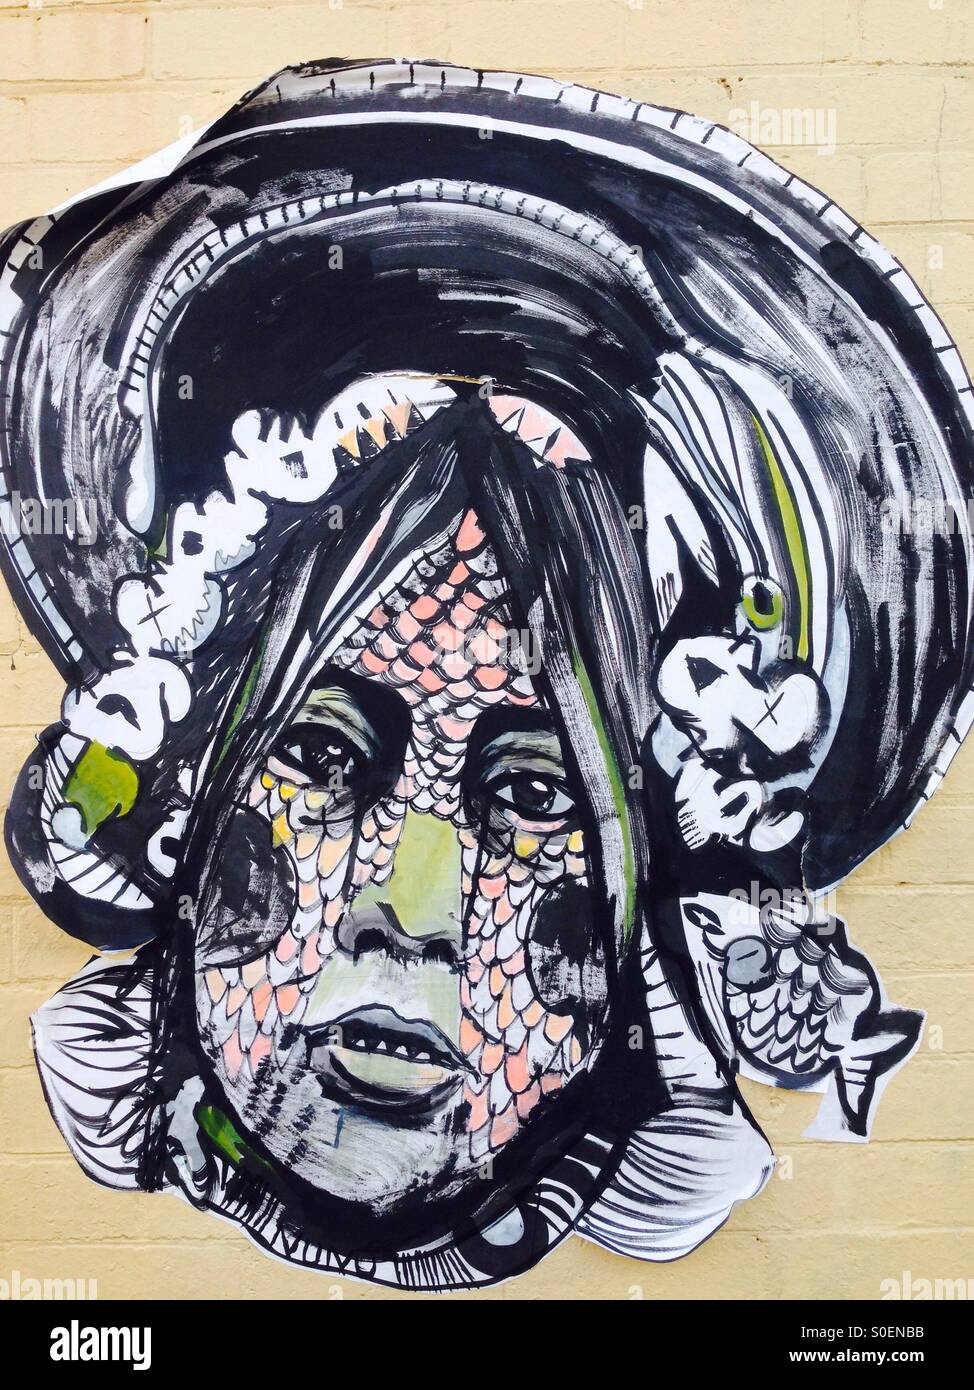 Street art of woman's face with fish scales - Stock Image